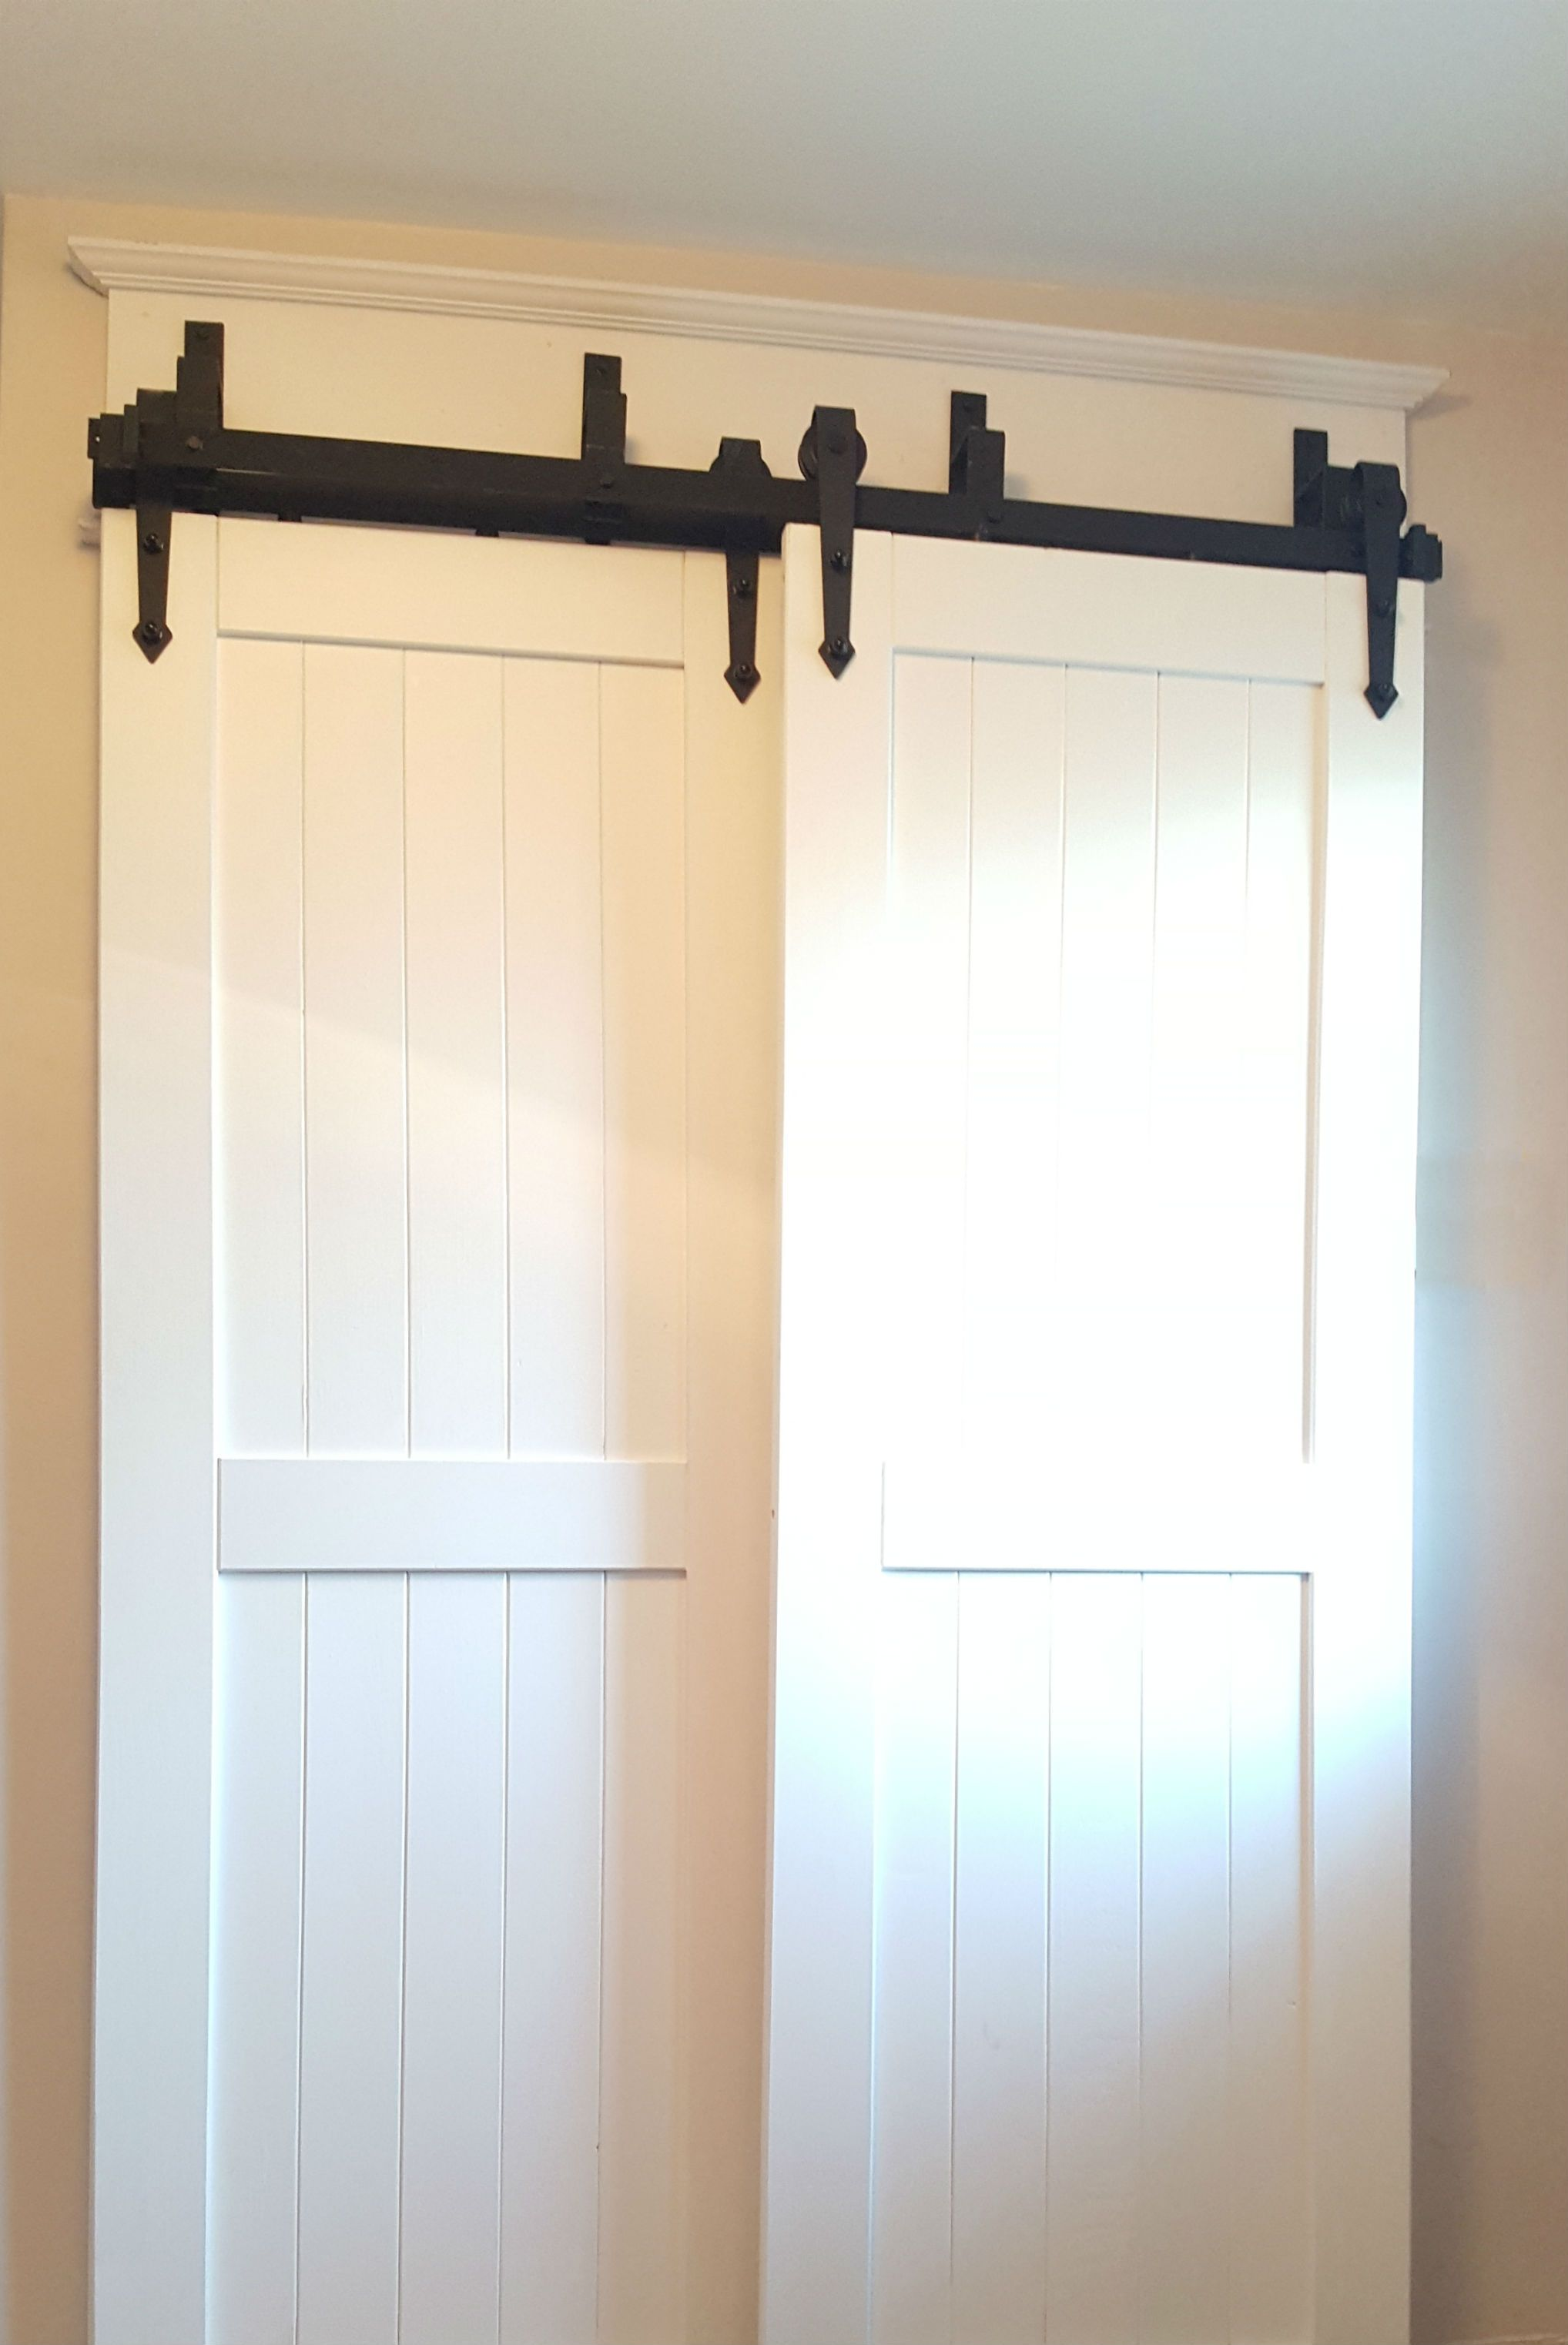 Merveilleux Bypass Barn Door Hardware Easy To Install Canada More